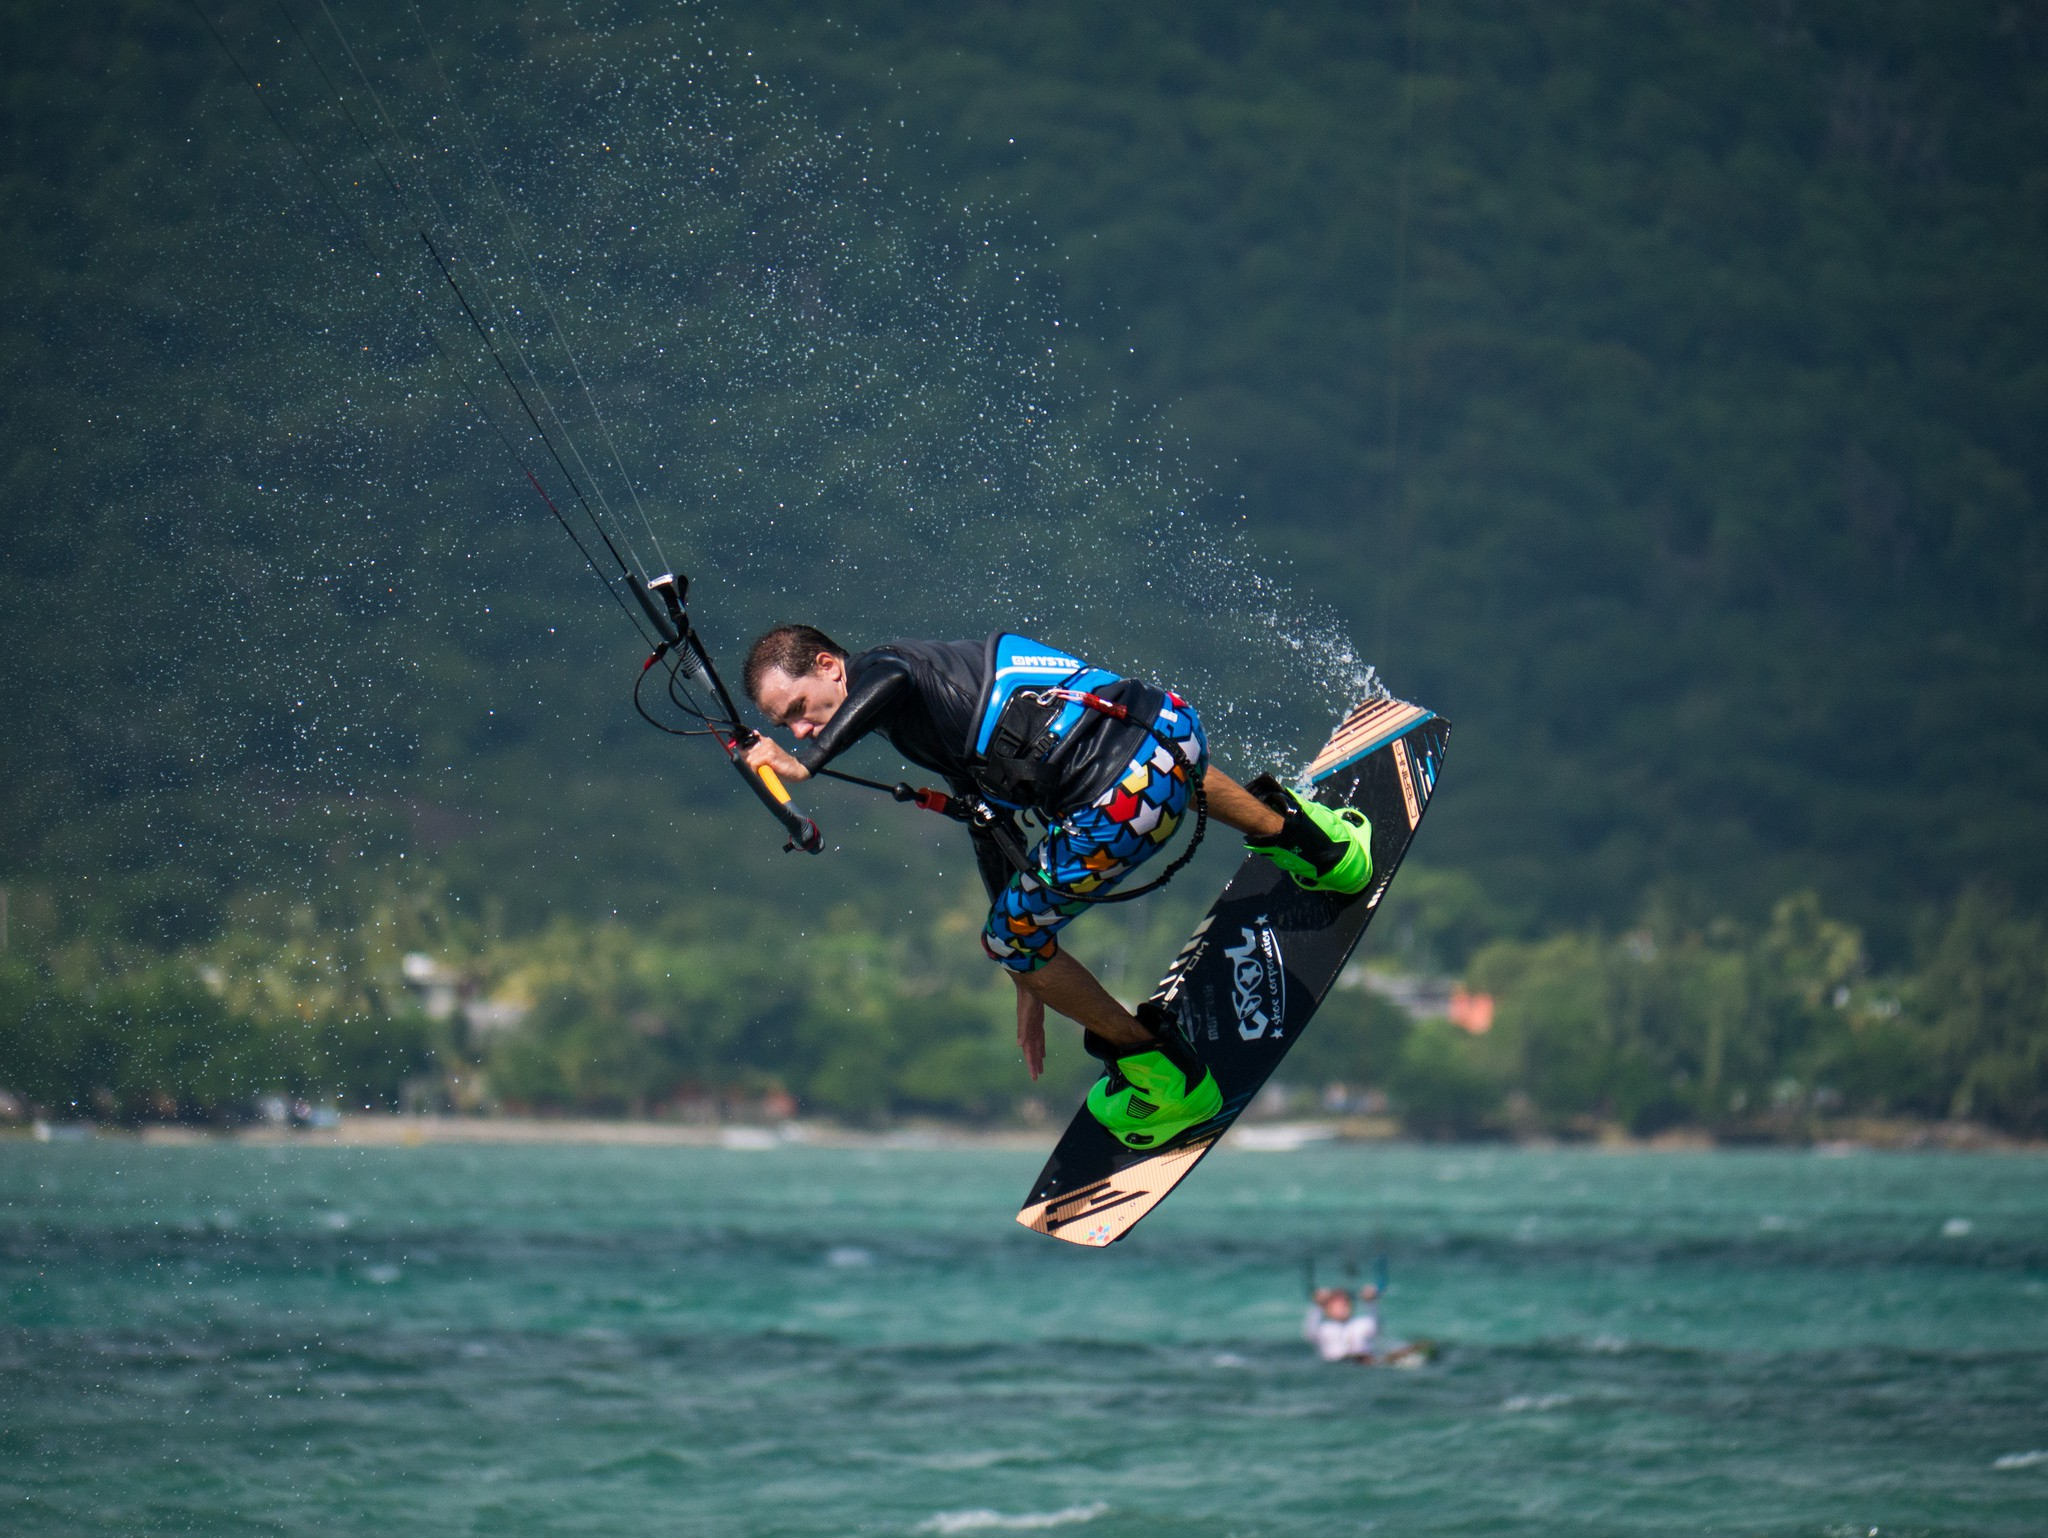 Kite surf in Mauritius|© Ludovic Lubeigt/FlickR https://www.flickr.com/photos/73796220@N04/28528948256/